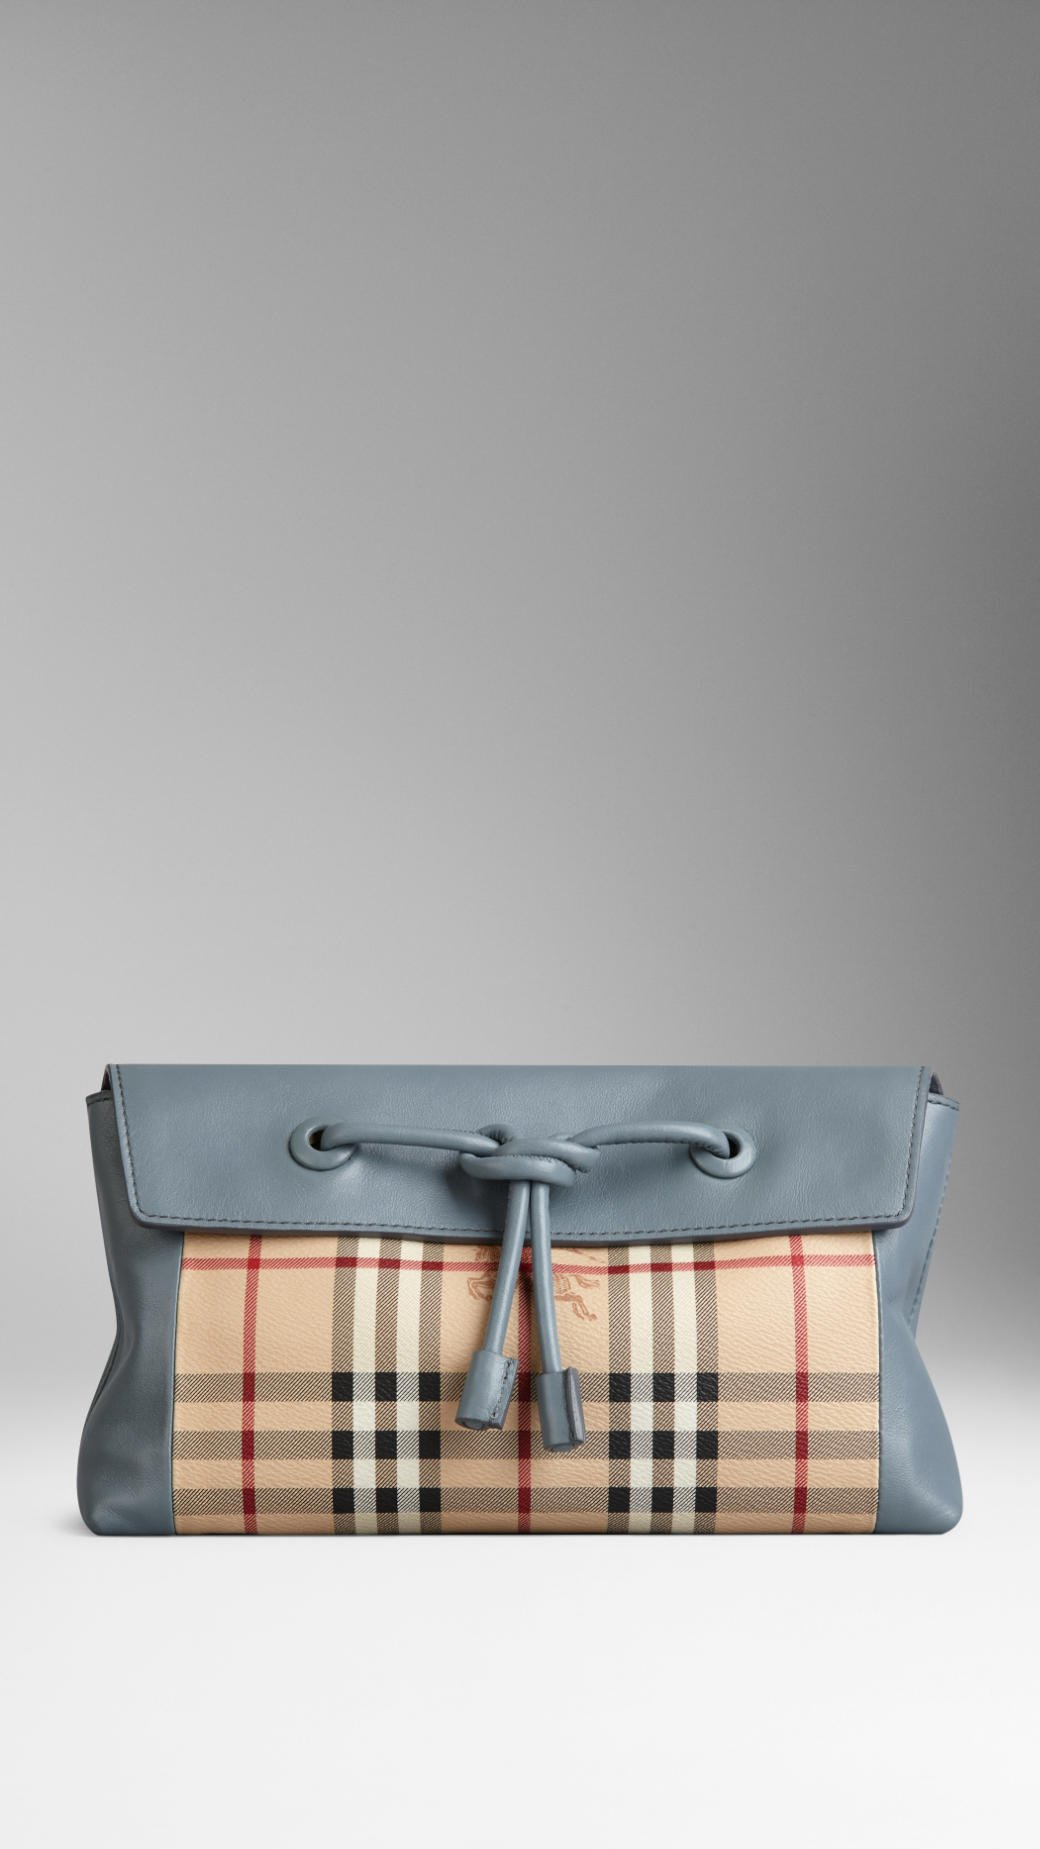 7f2c7a7f4776 Lyst - Burberry Small Leather and Haymarket Check Clutch Bag